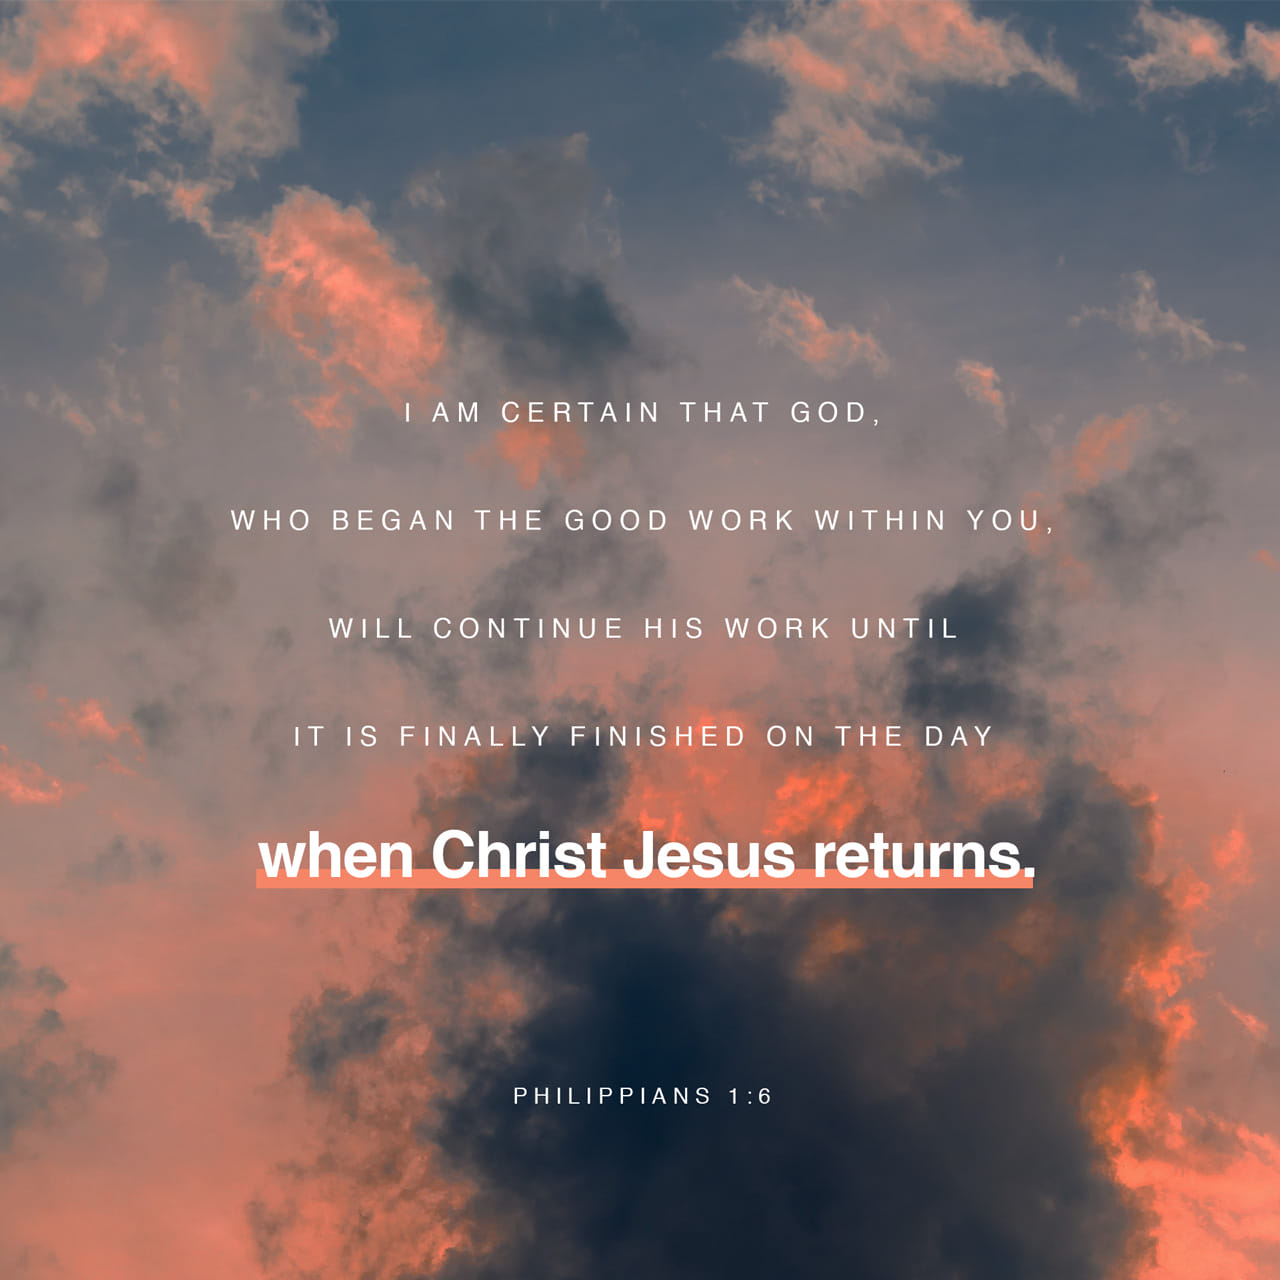 Philippians 1:6 And I am certain that God, who began the good work within you, will continue his work until it is finally finished on the day when Christ Jesus returns. | New Living Translation (NLT) | Download The Bible App Now